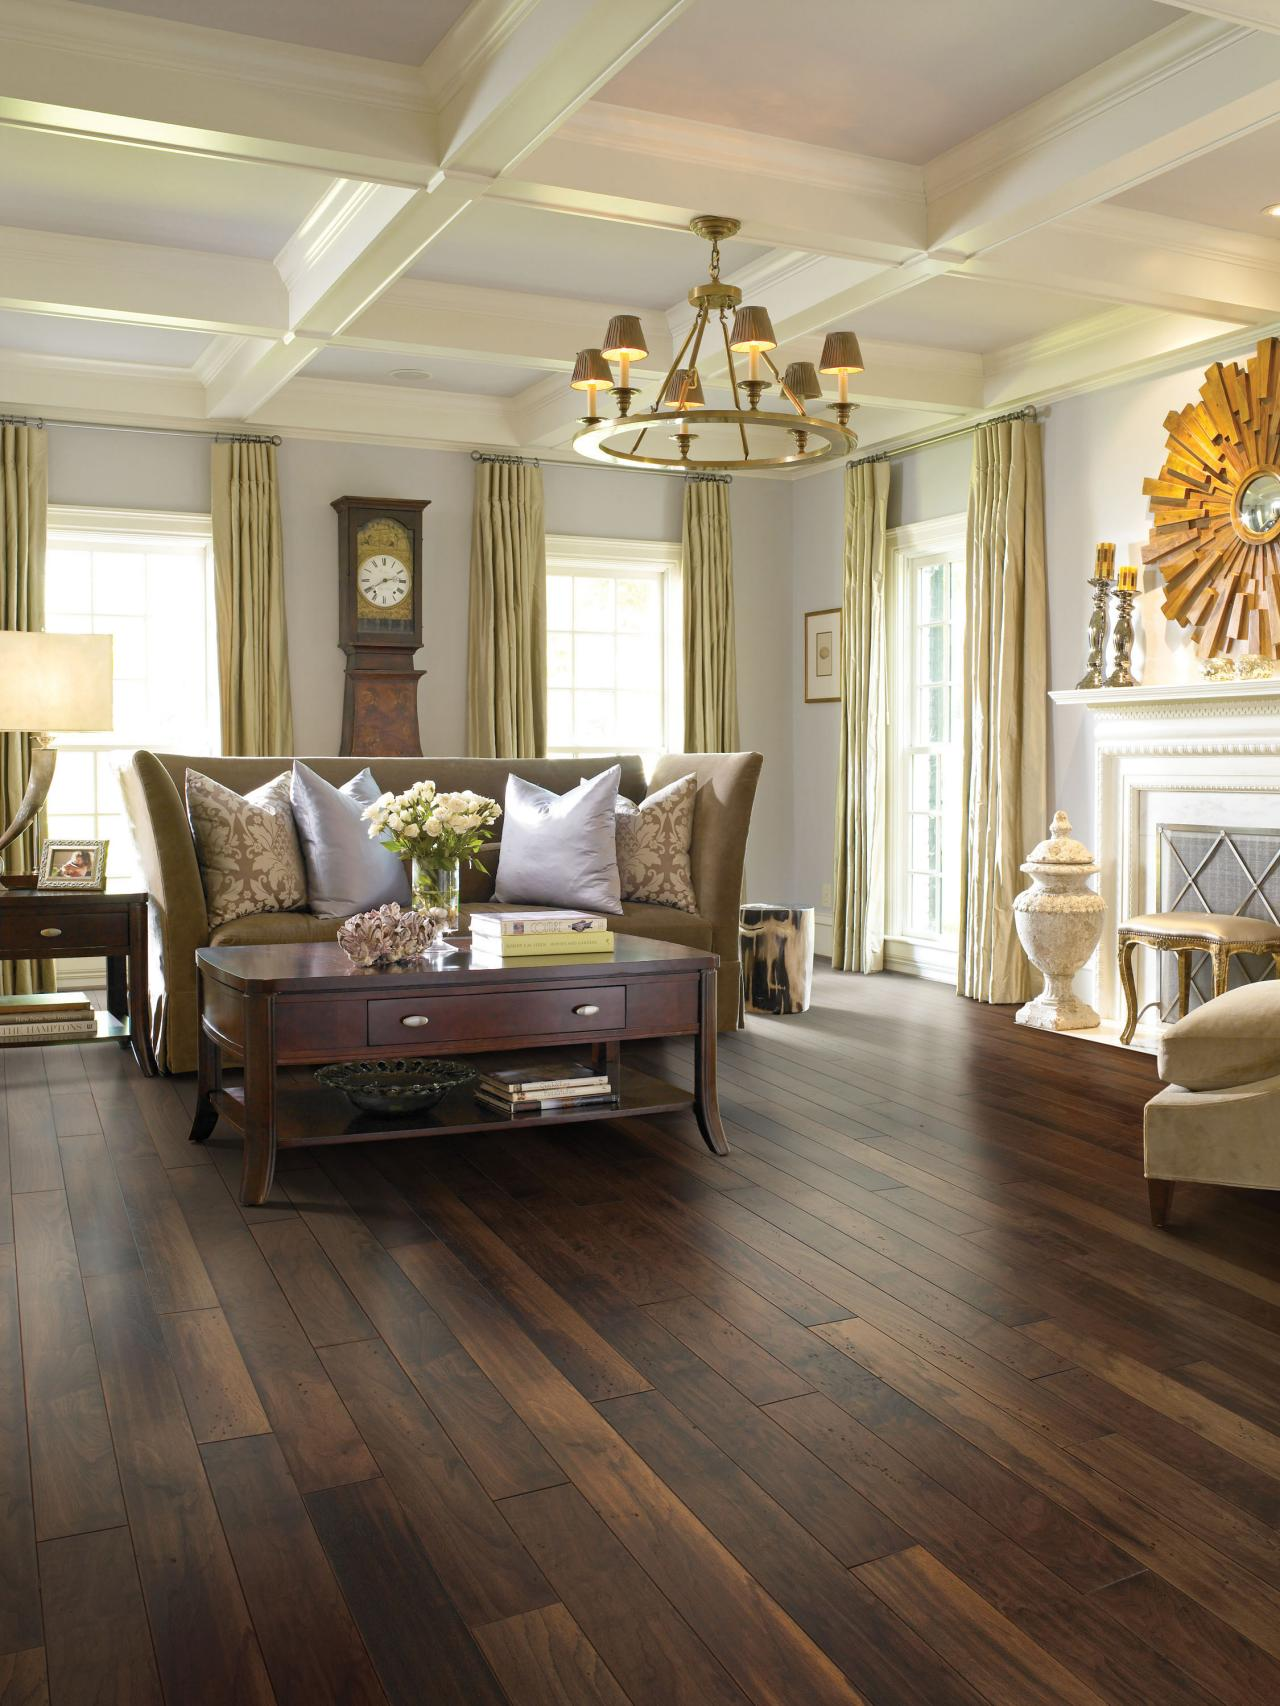 Hardwood Floor Ideas options for the look of hardwood floors Sophisticated Styling